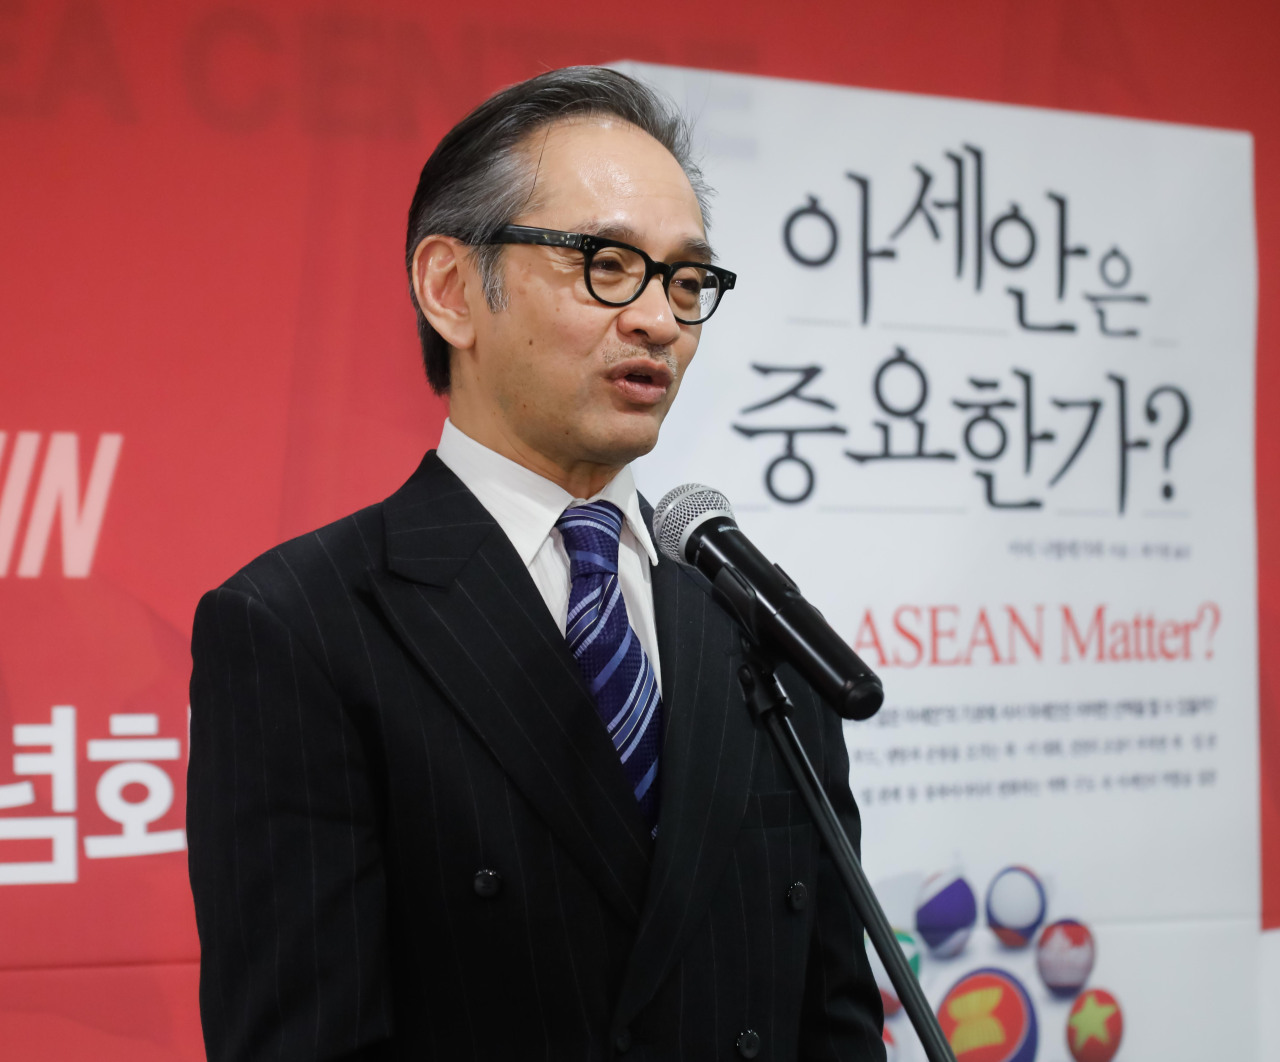 "Former Indonesian Foreign Minister Marty Natalegawa speaks during the launch of the Korean edition of his book ""Does ASEAN Matter"" in central Seoul on Nov 12. (ASEAN-Korea Centre)"